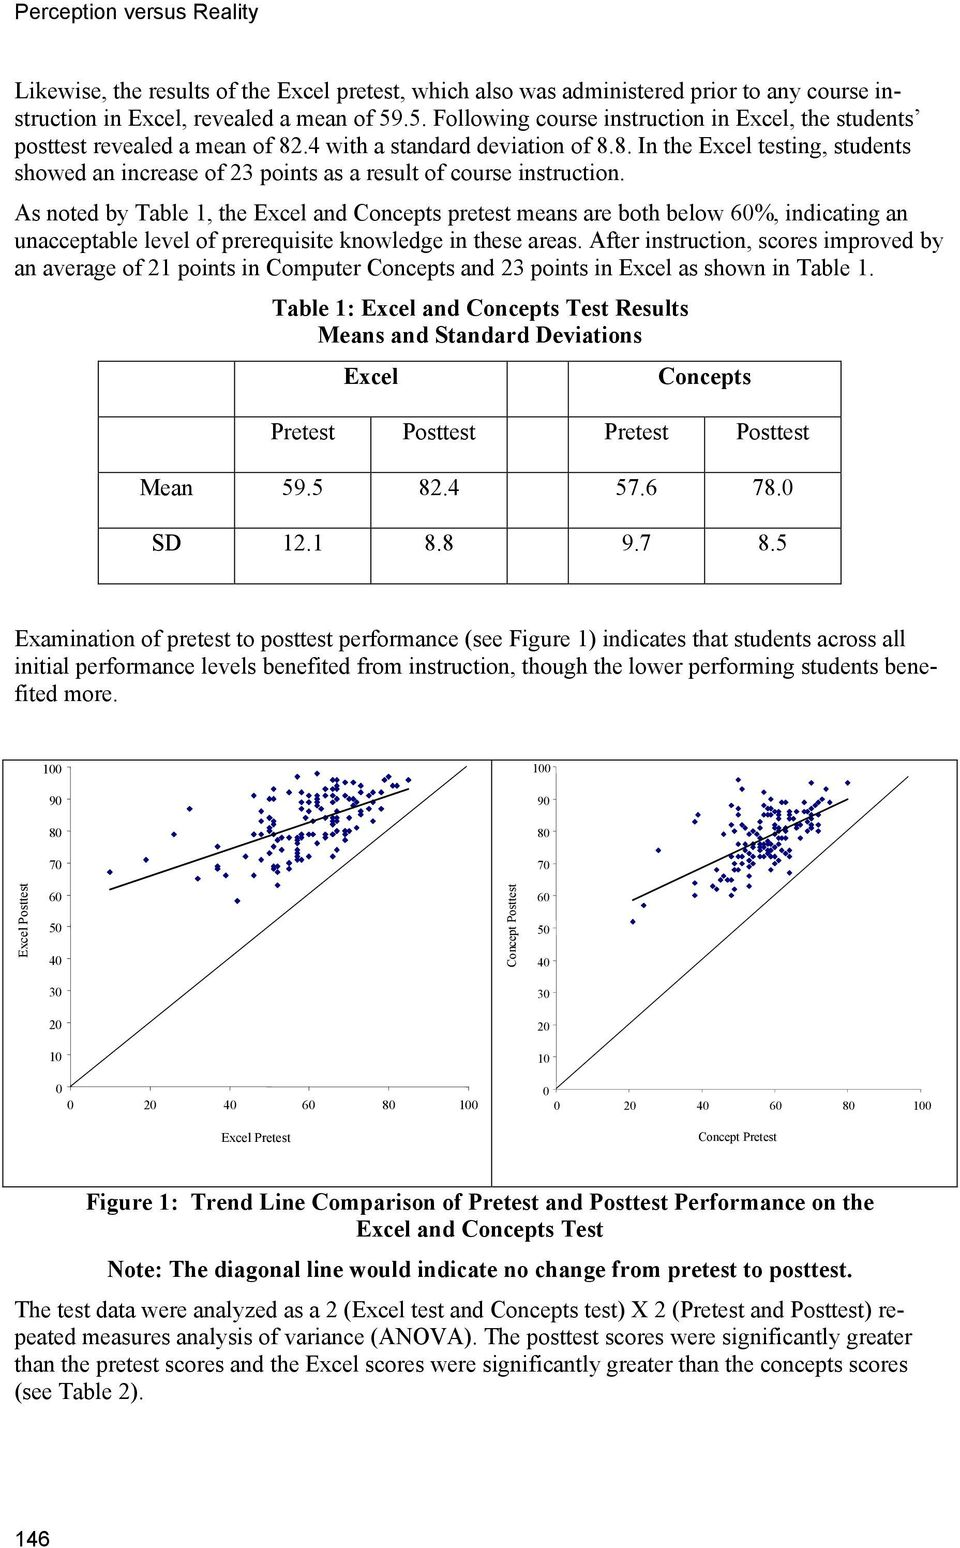 As noted by Table 1, the Excel and Concepts pretest means are both below 60%, indicating an unacceptable level of prerequisite knowledge in these areas.